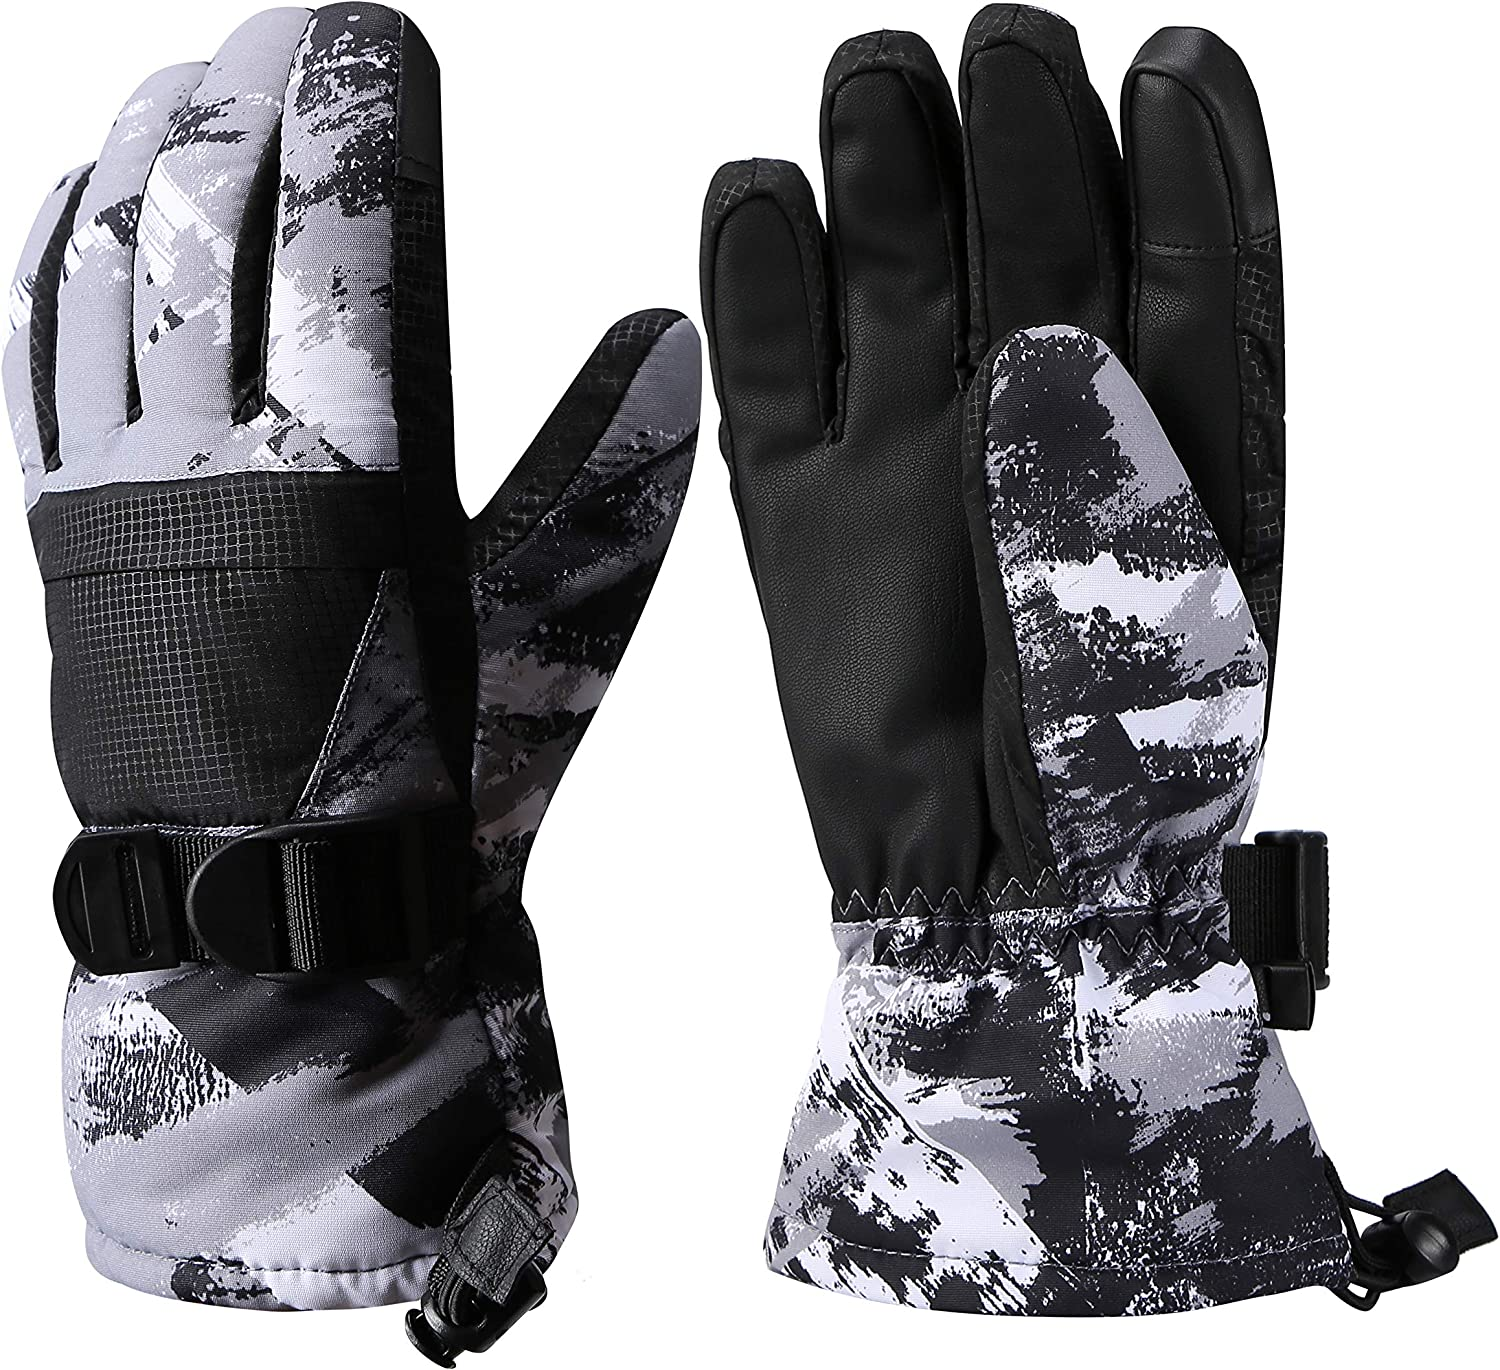 Ski Gloves, Warmest Waterproof and Breathable Snow Gloves for Mens, Womens, Ladies and Kids Skiing, for Parent Child Outdoor : Clothing